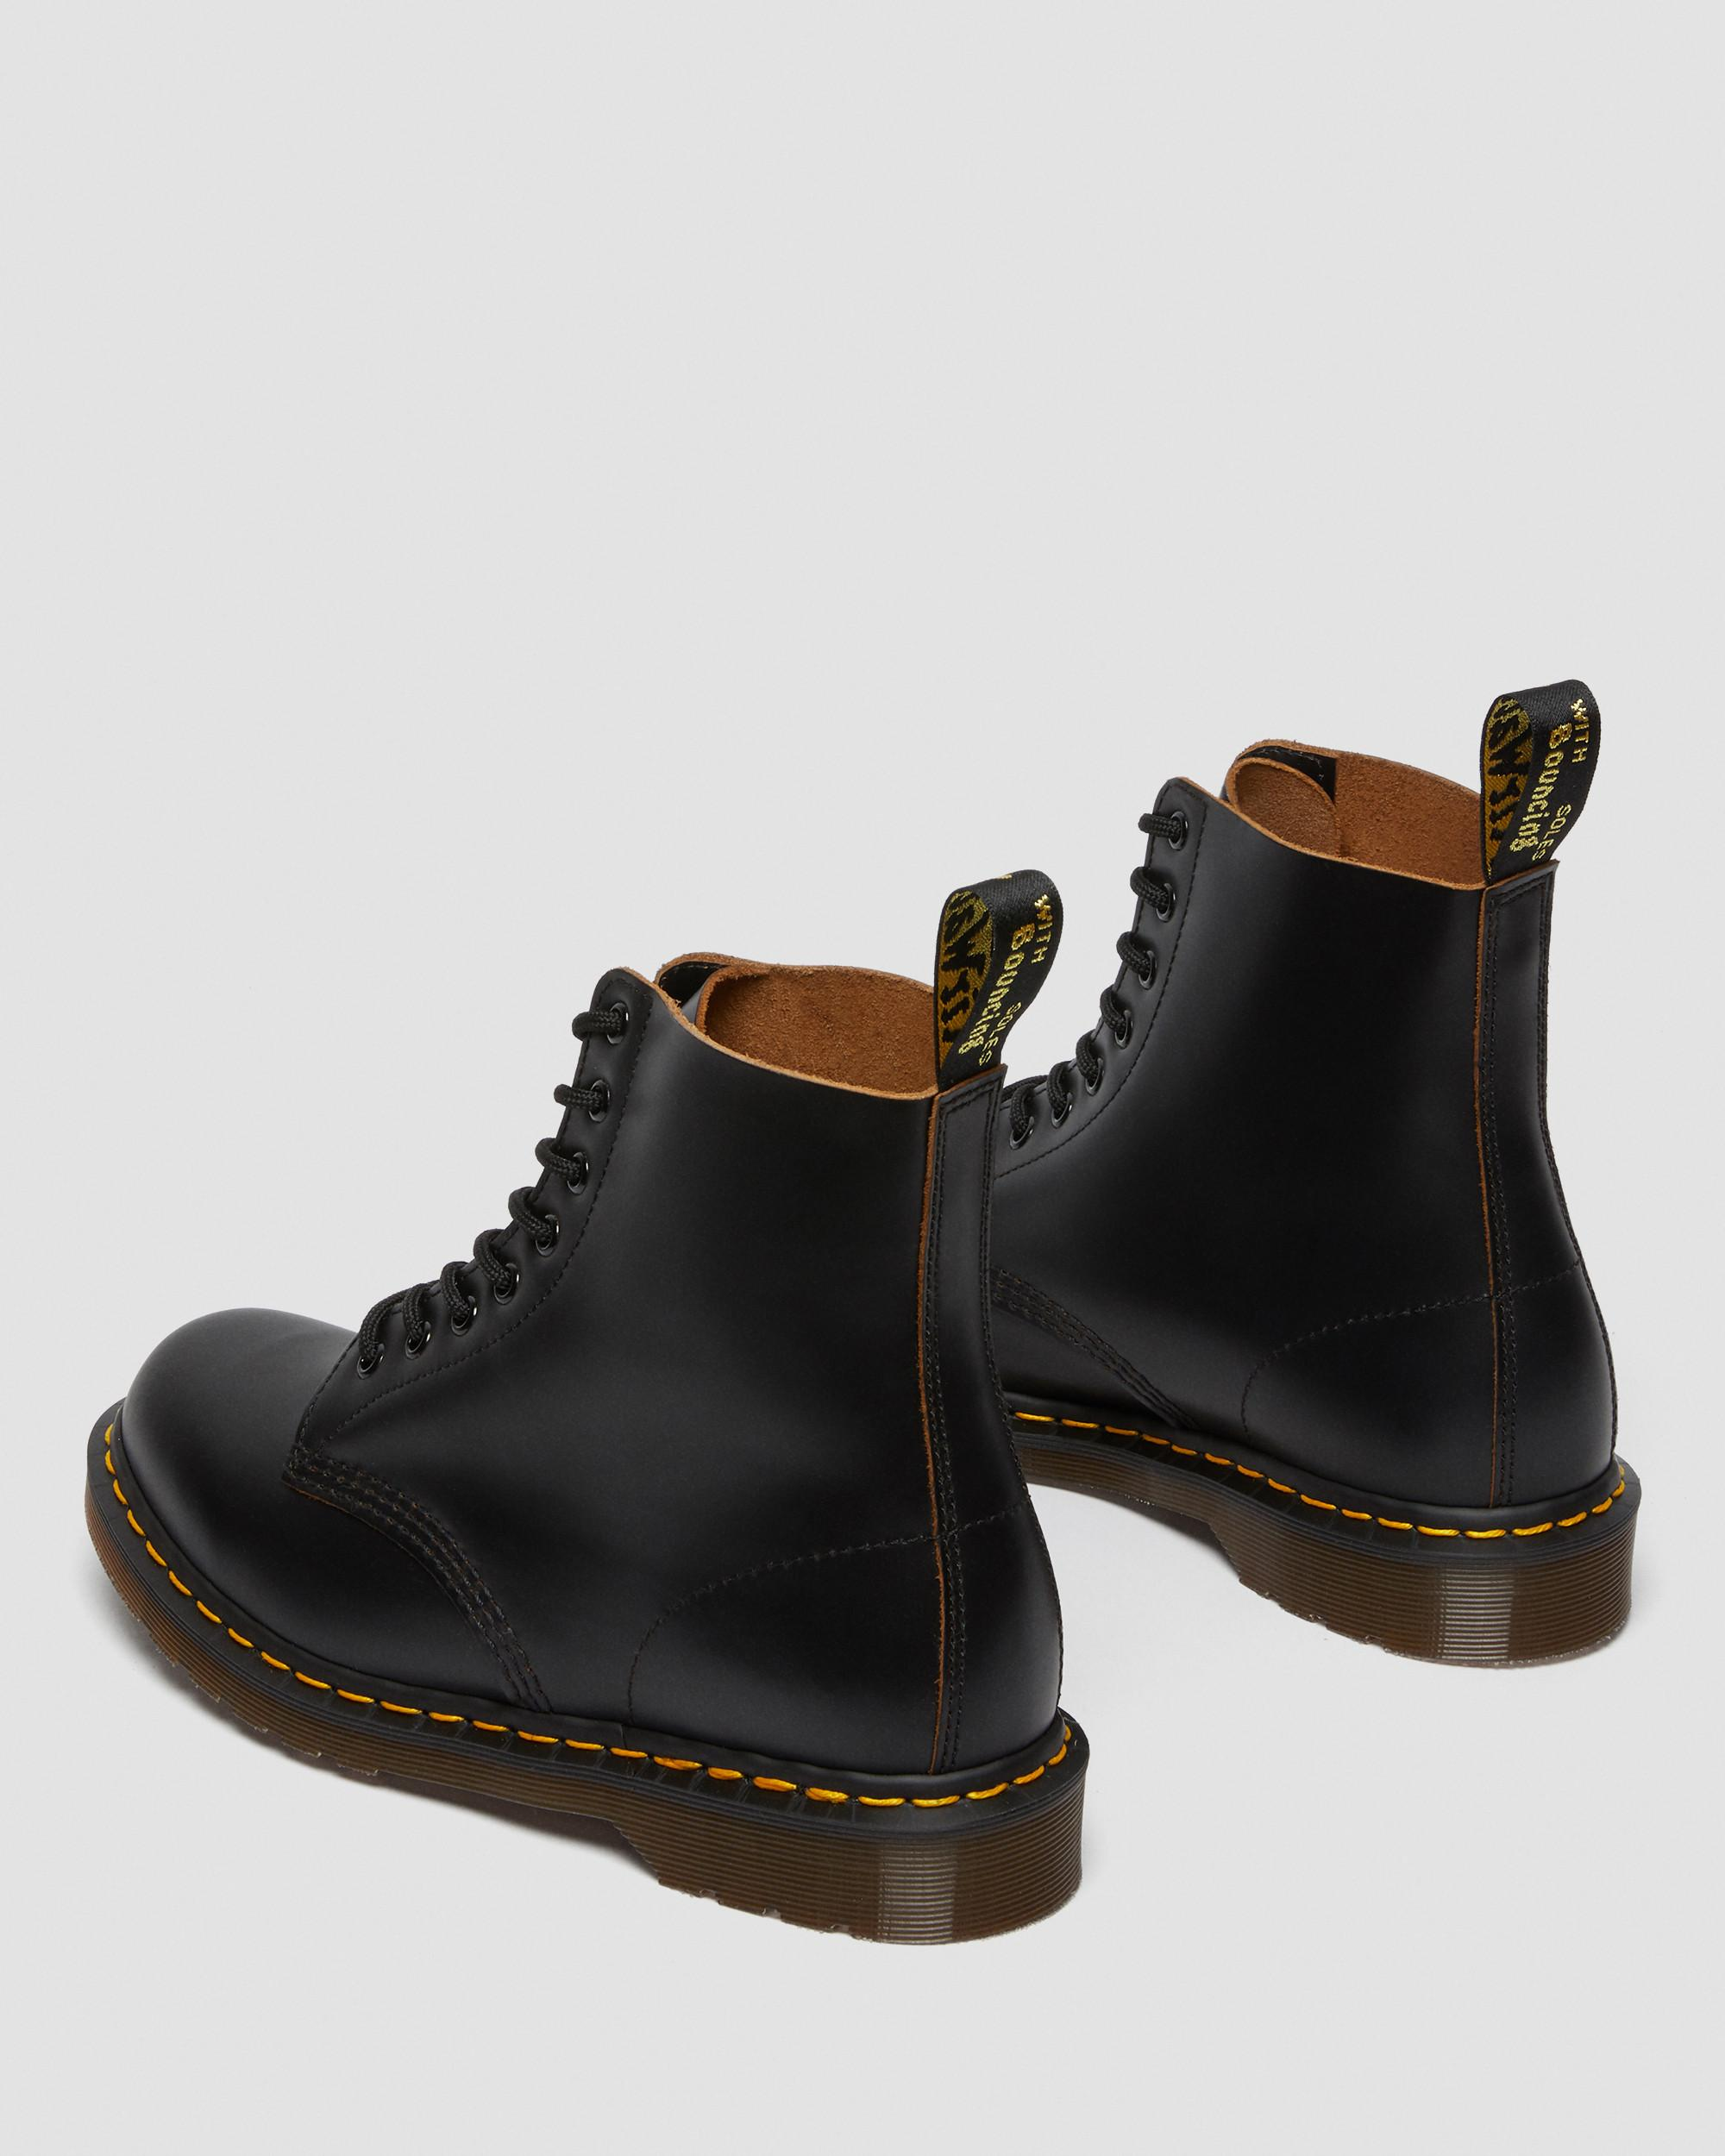 DR MARTENS 1460 VINTAGE MADE IN ENGLAND LACE UP BOOTS